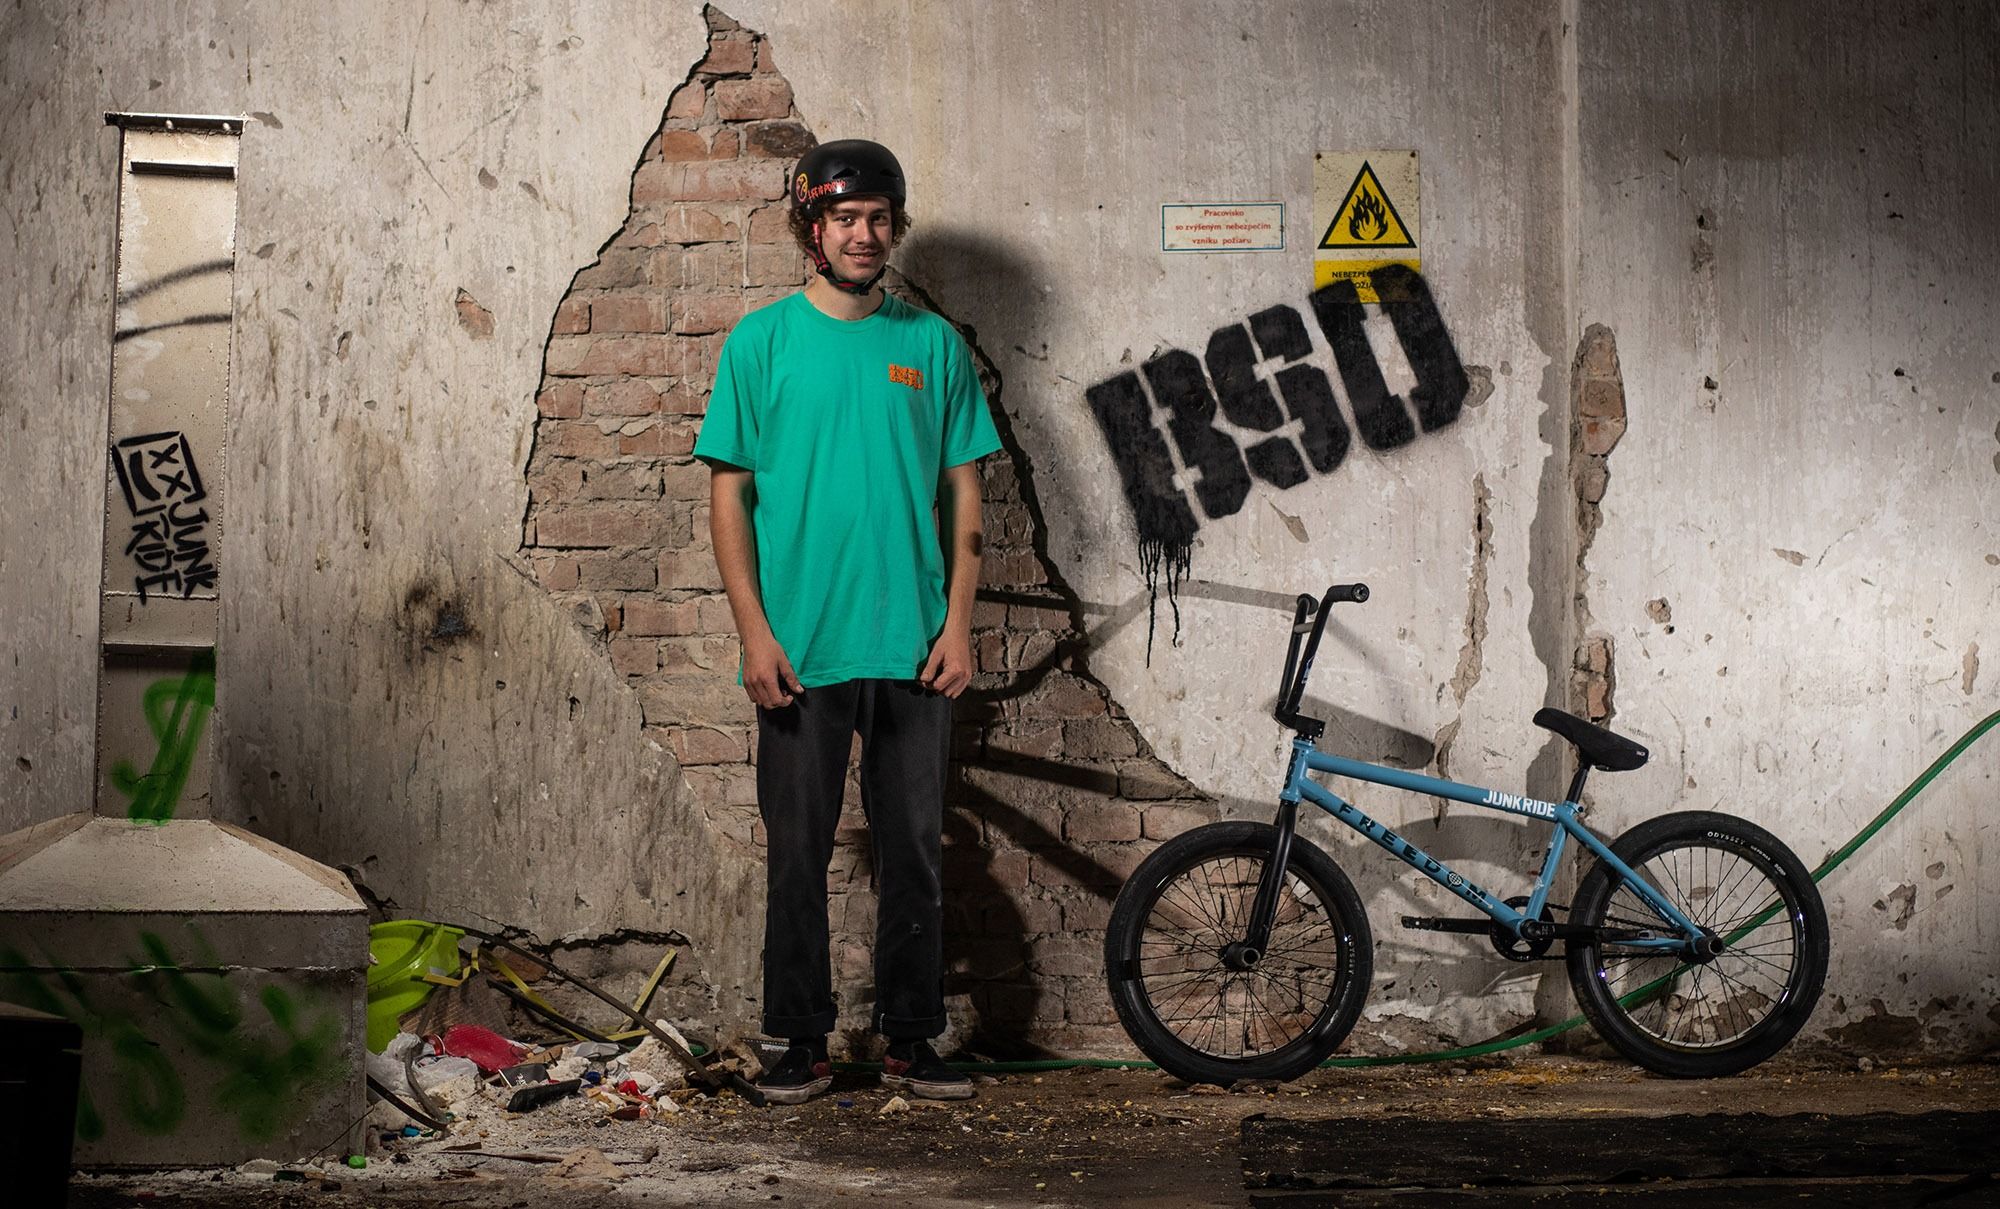 Michal Kovačovič Welcome to BSD Worldwide Team / BIKECHECK